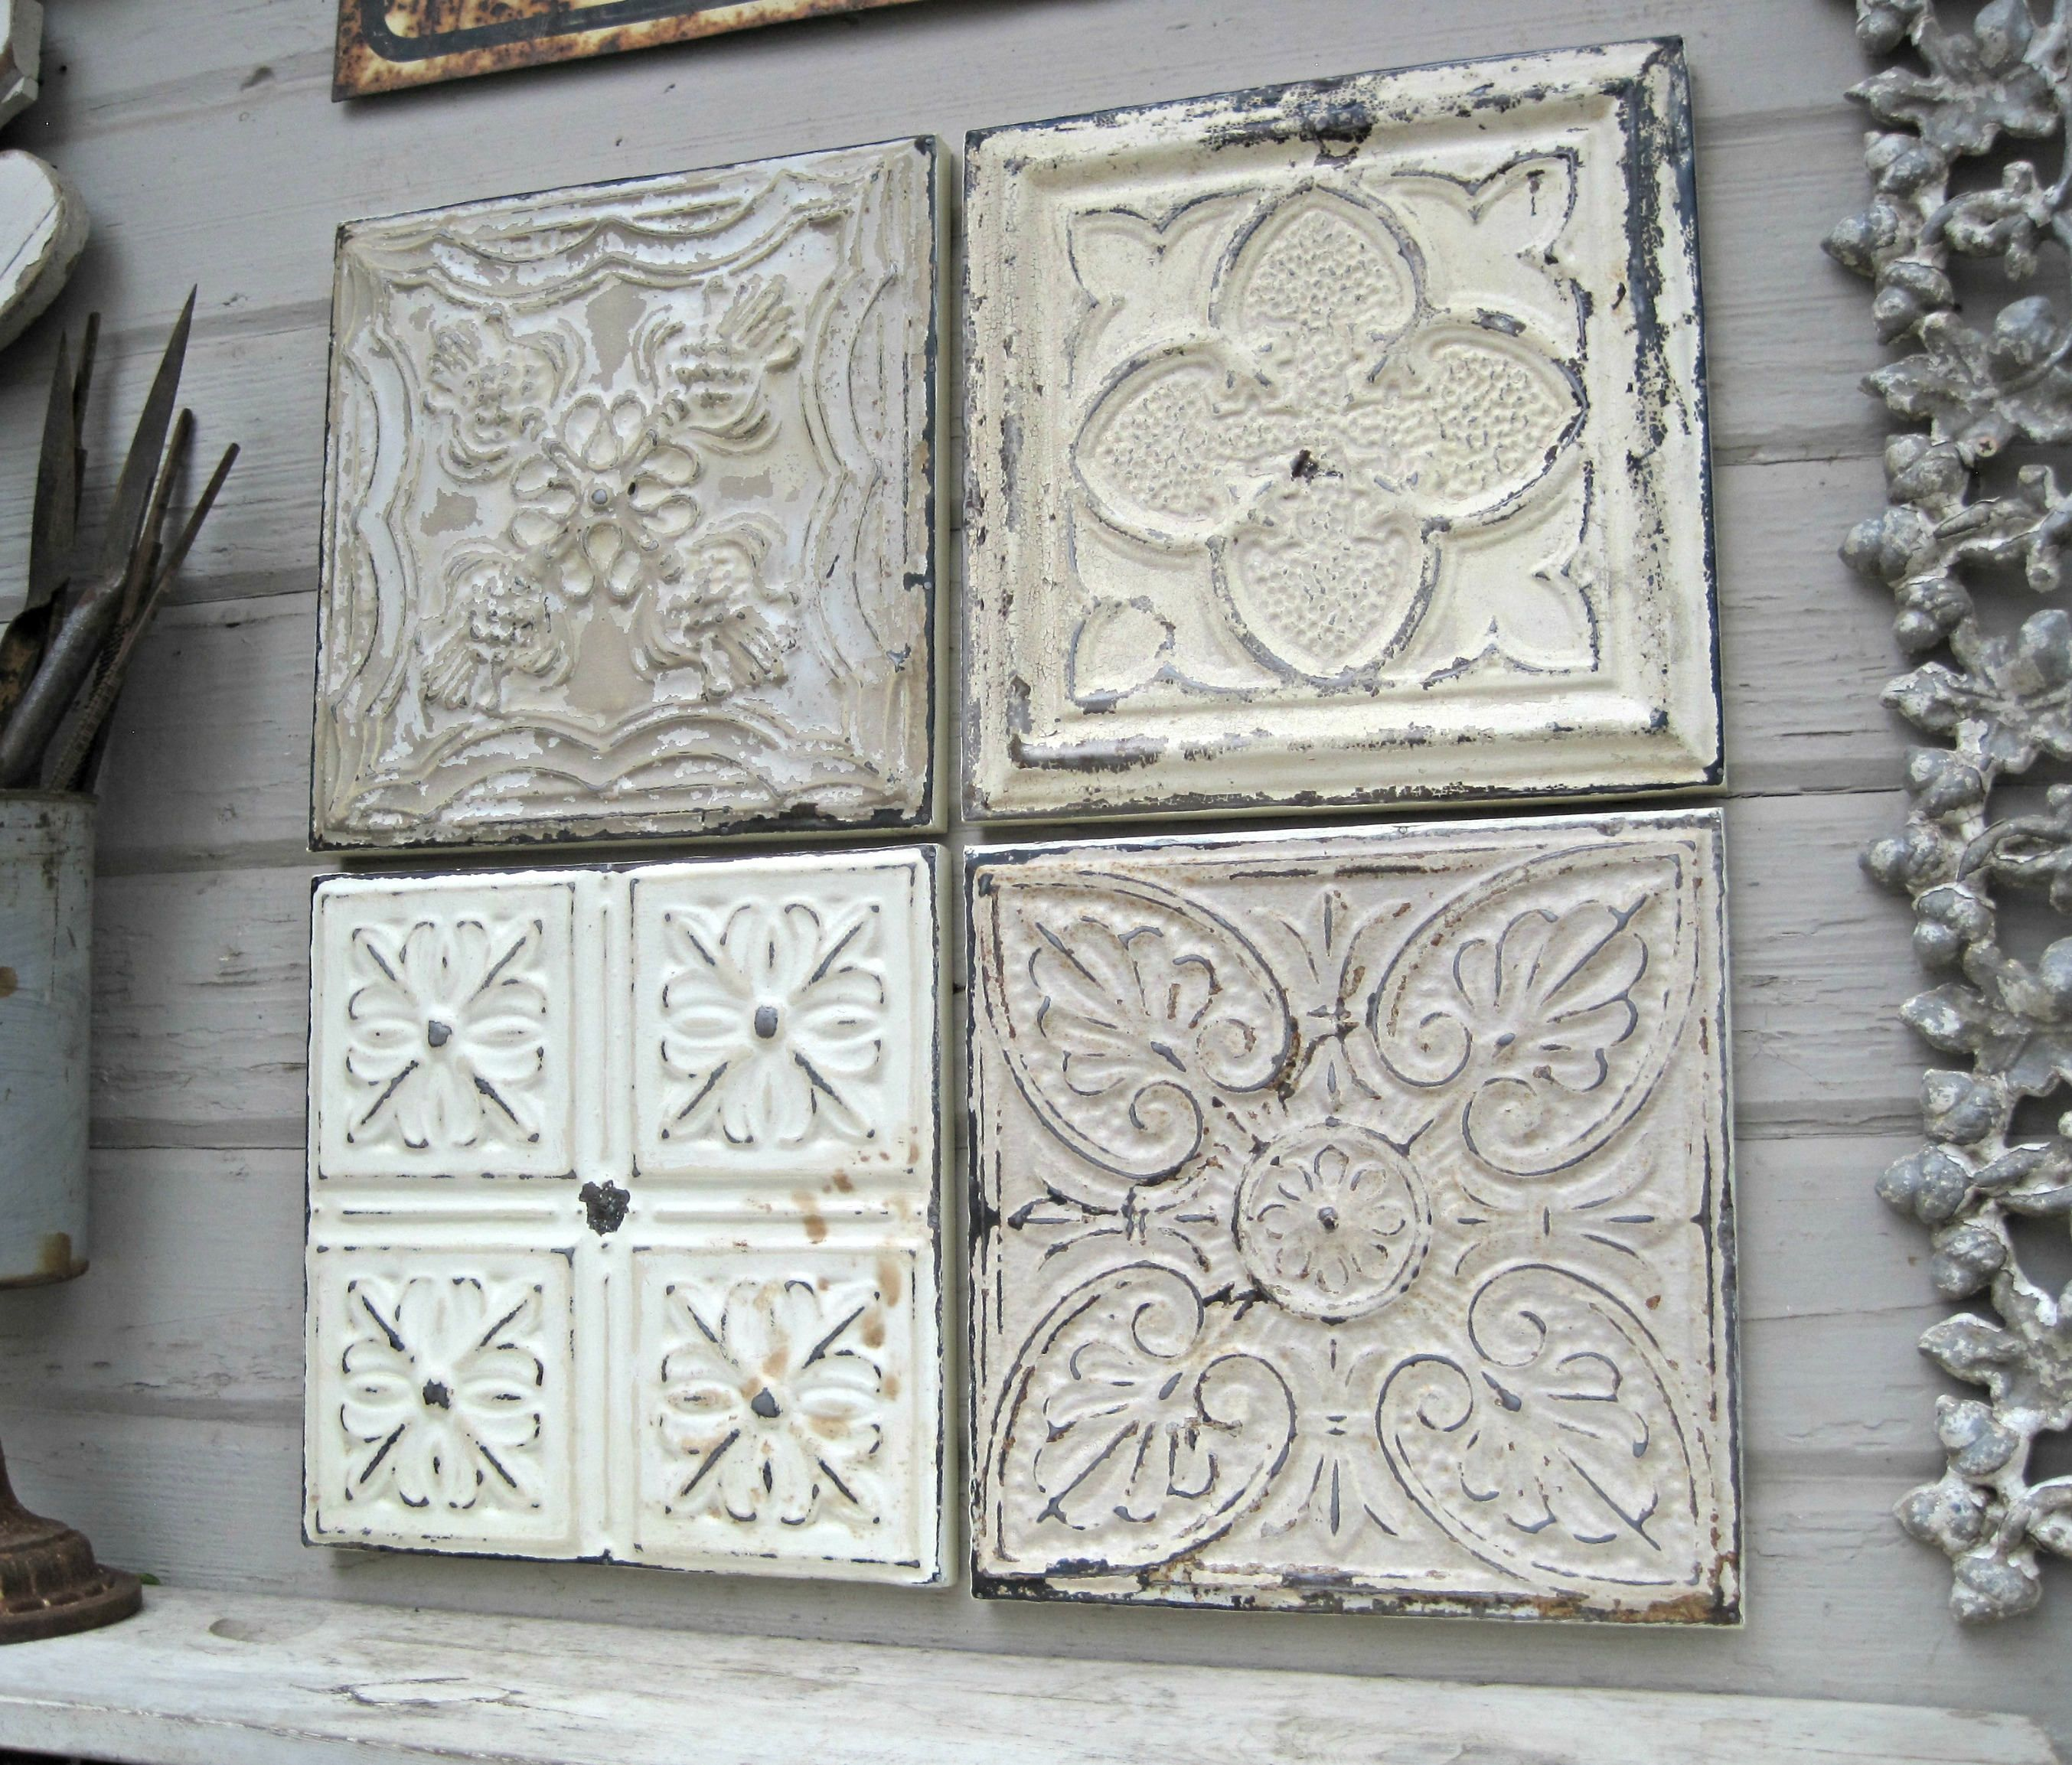 Rustic Wall Decor rustic wall decor, antique architectural salvage, 4 framed ceiling